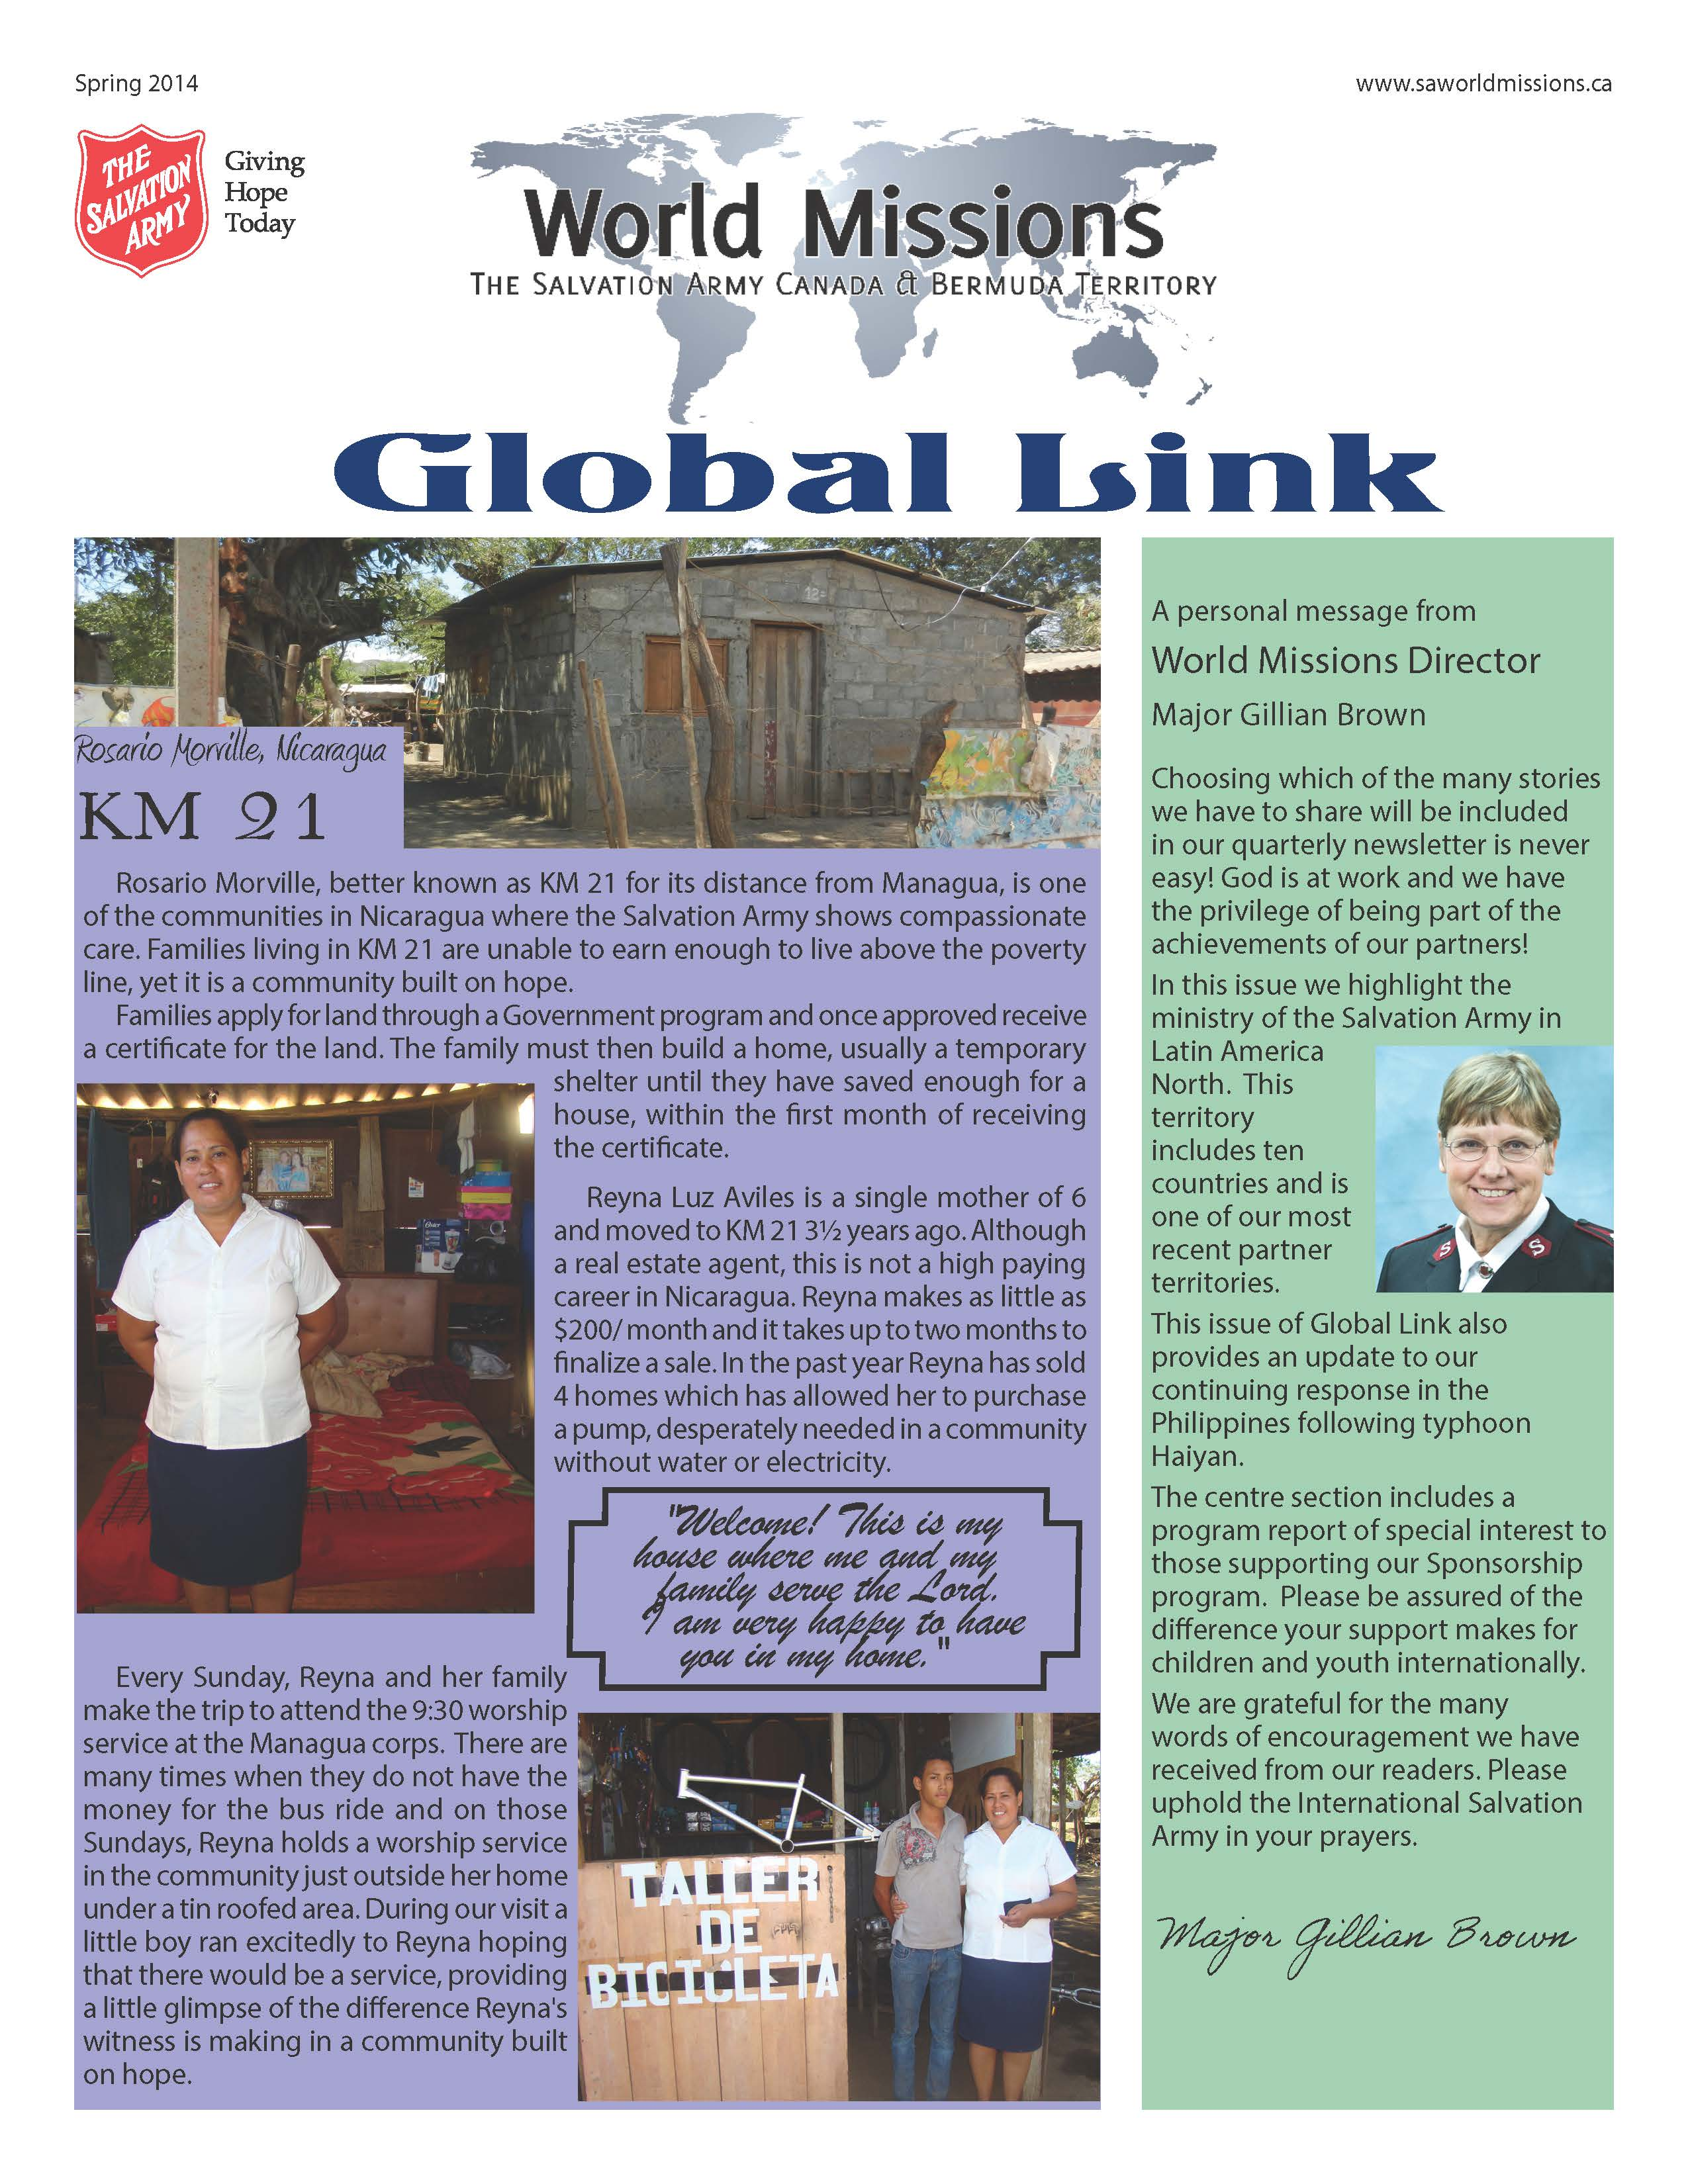 Global Link Spring 2014 Newsletter Button/Graphic